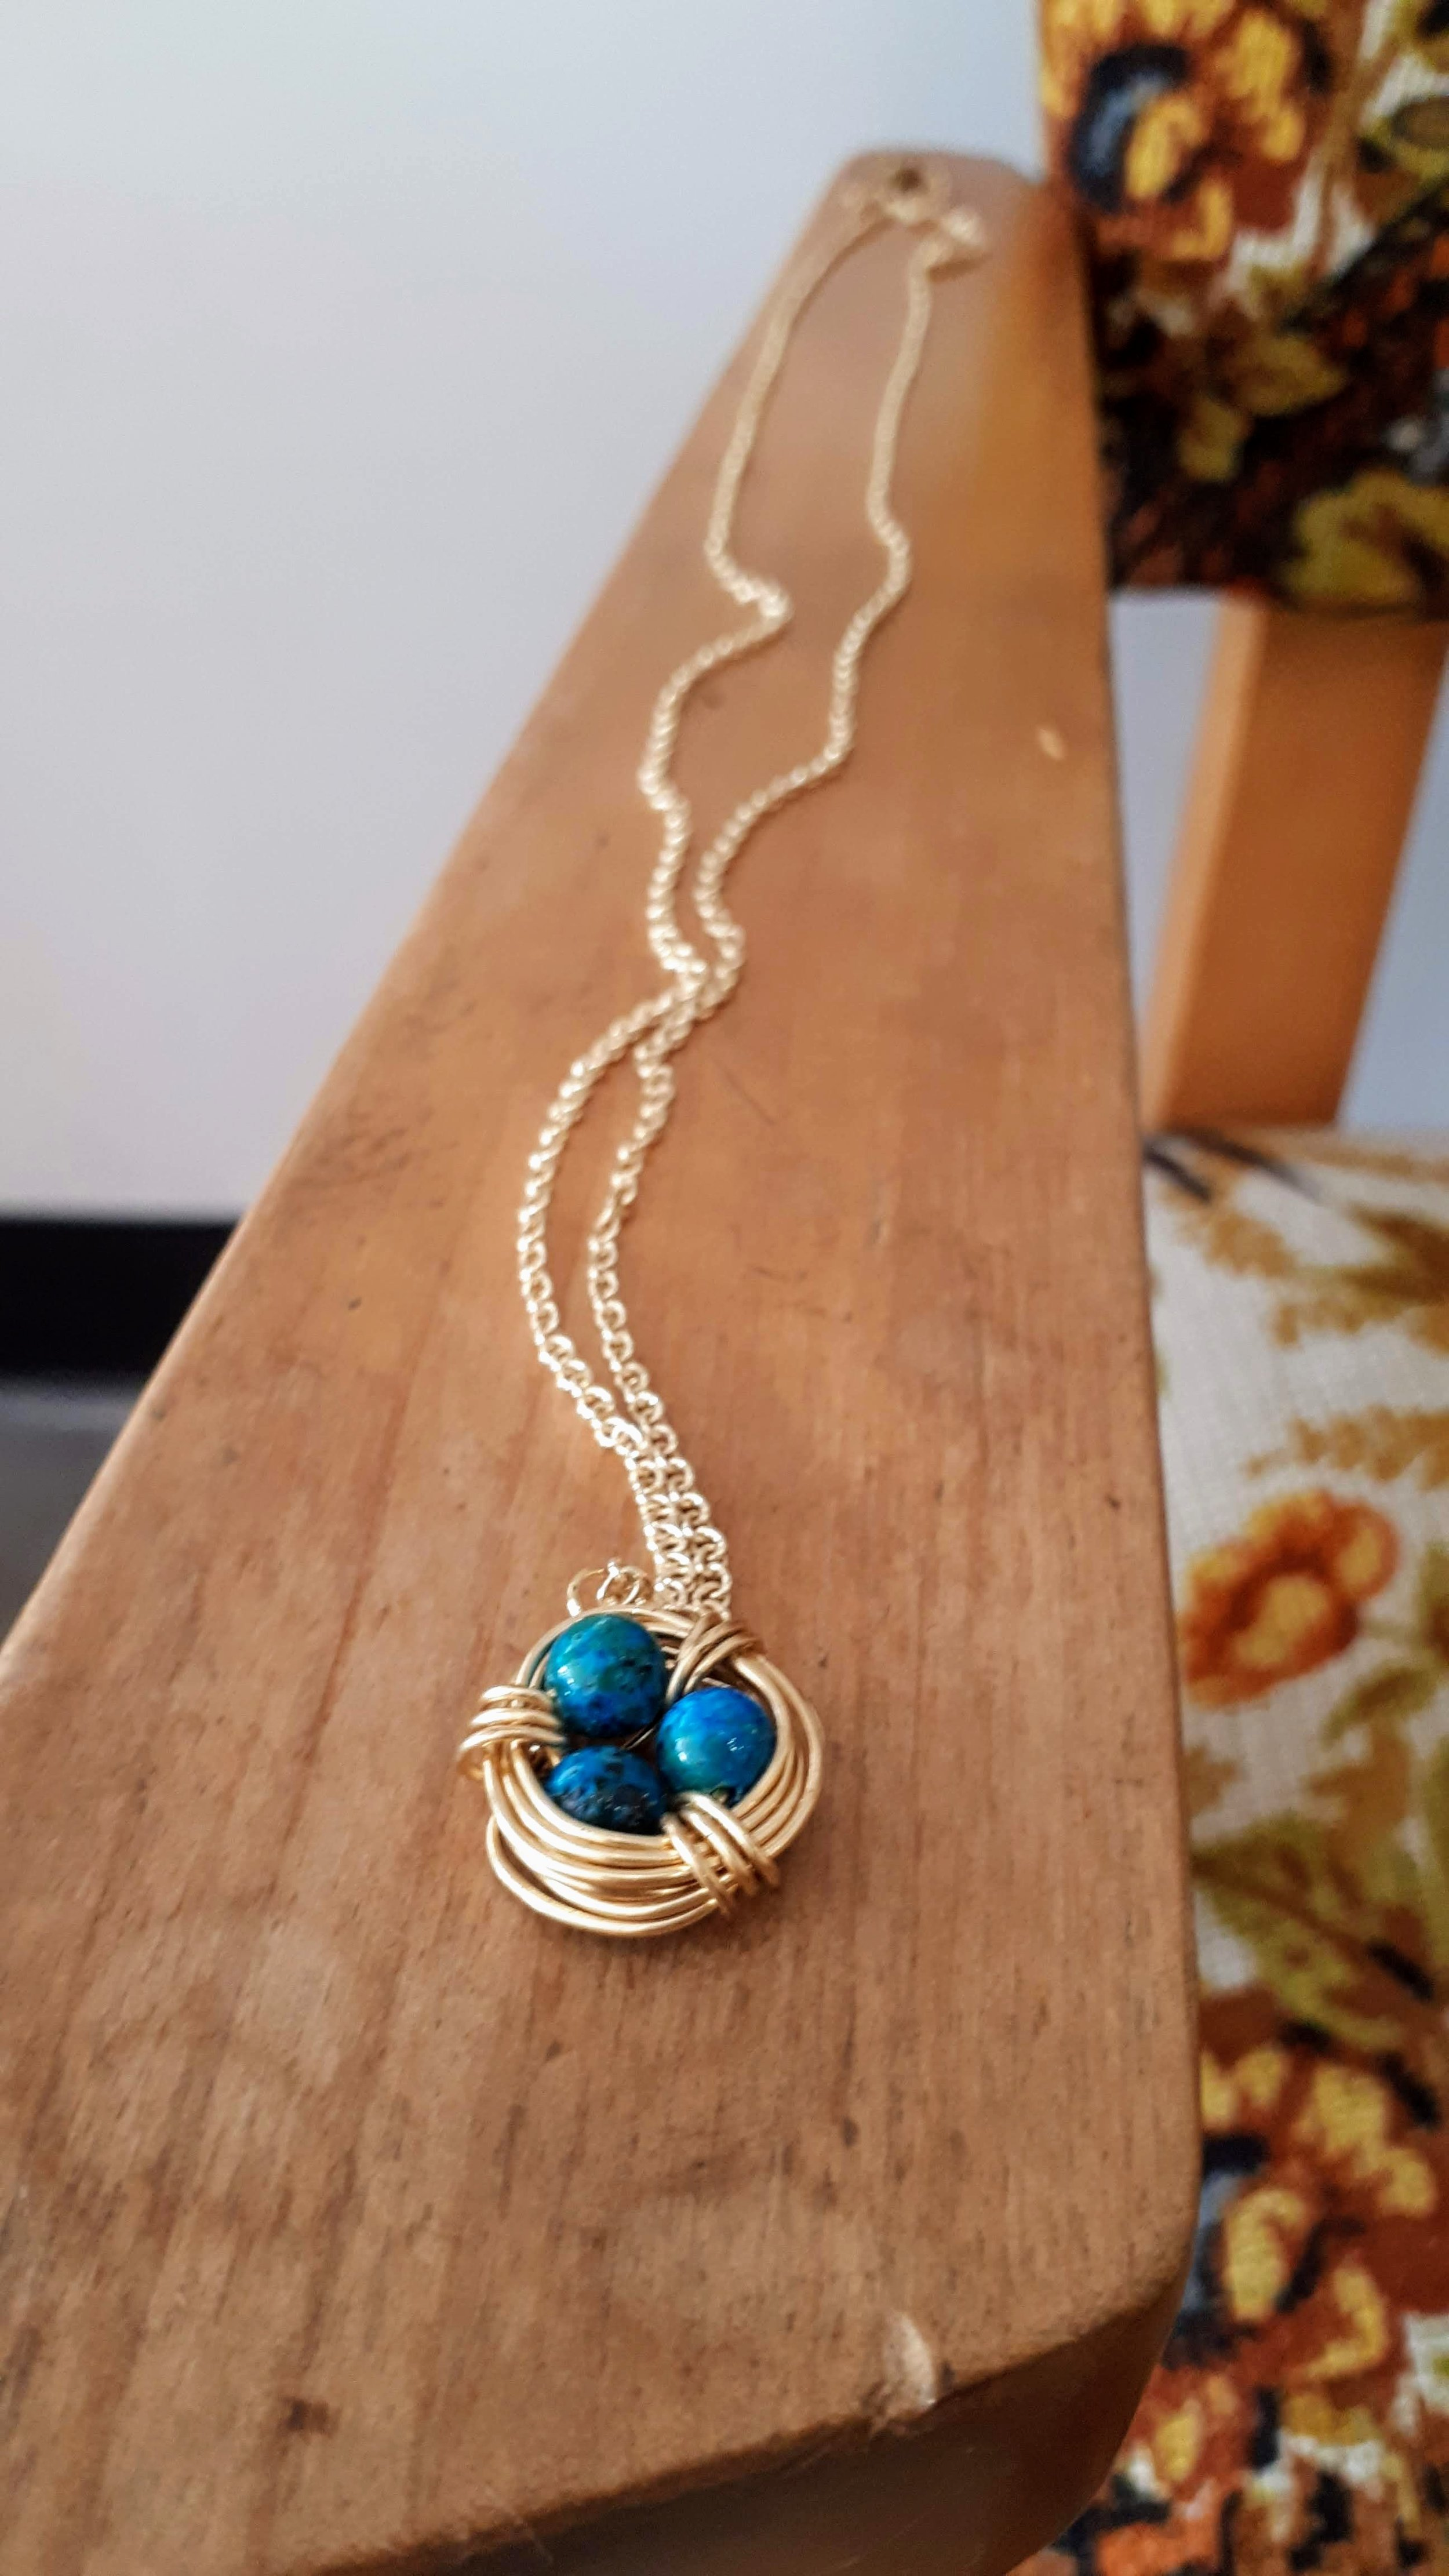 Necklace, $12